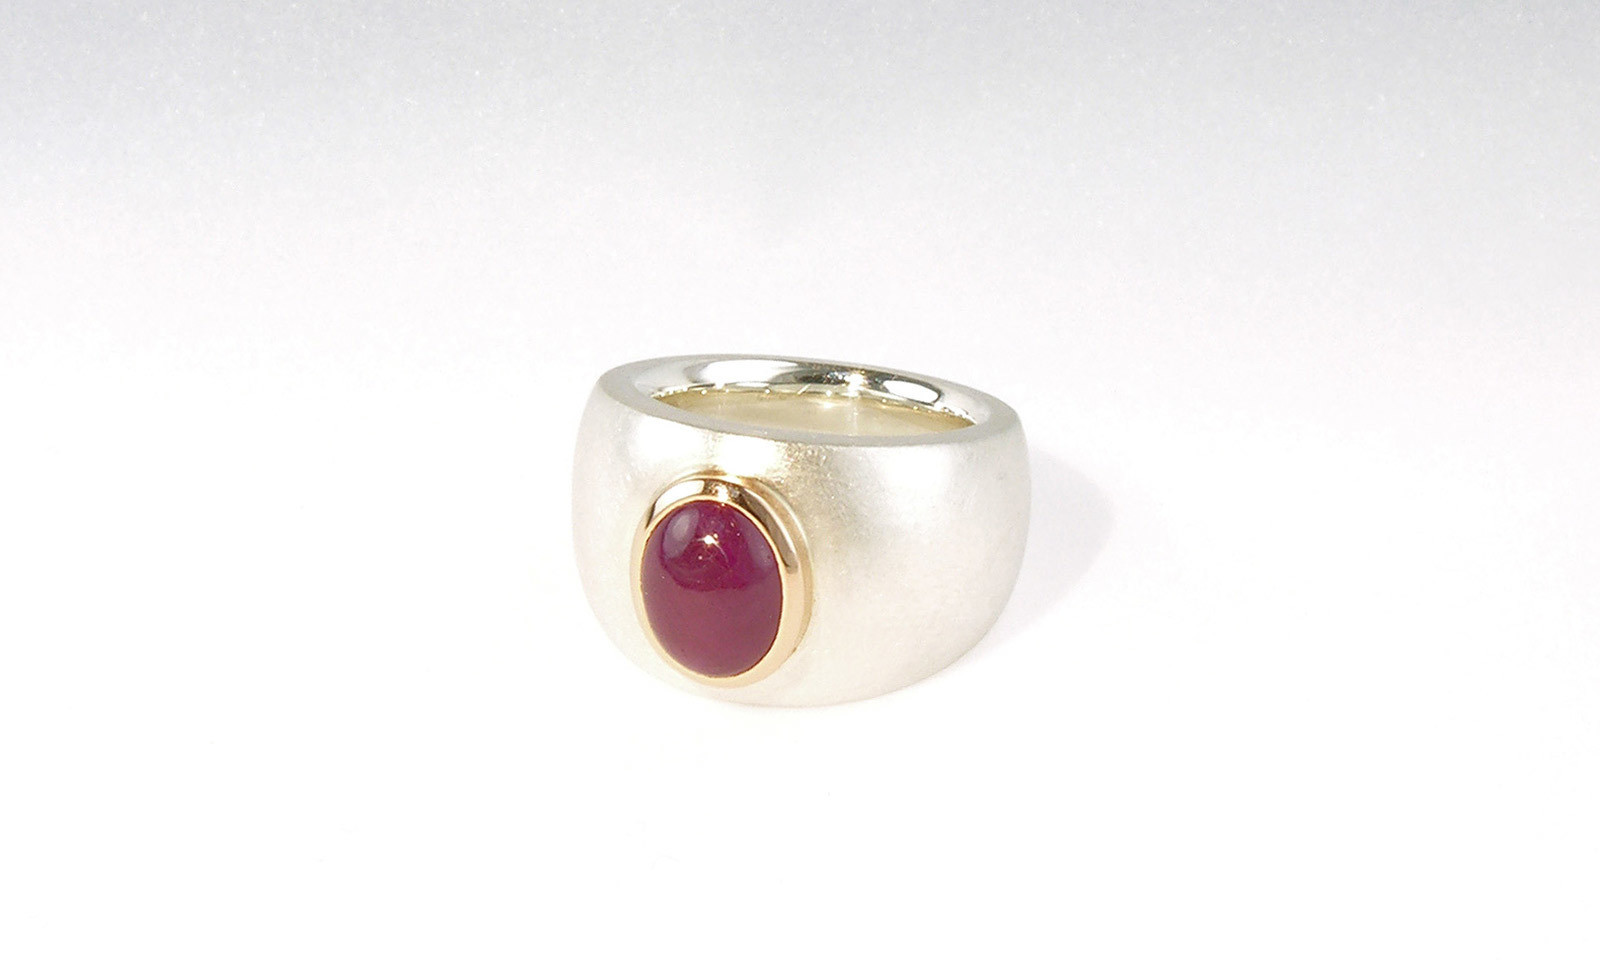 Ring Rubin Silber. Ring Silber 925 und Rotgold 750 mit Rubin Cabochon 3.28 ct., CHF 2800.-